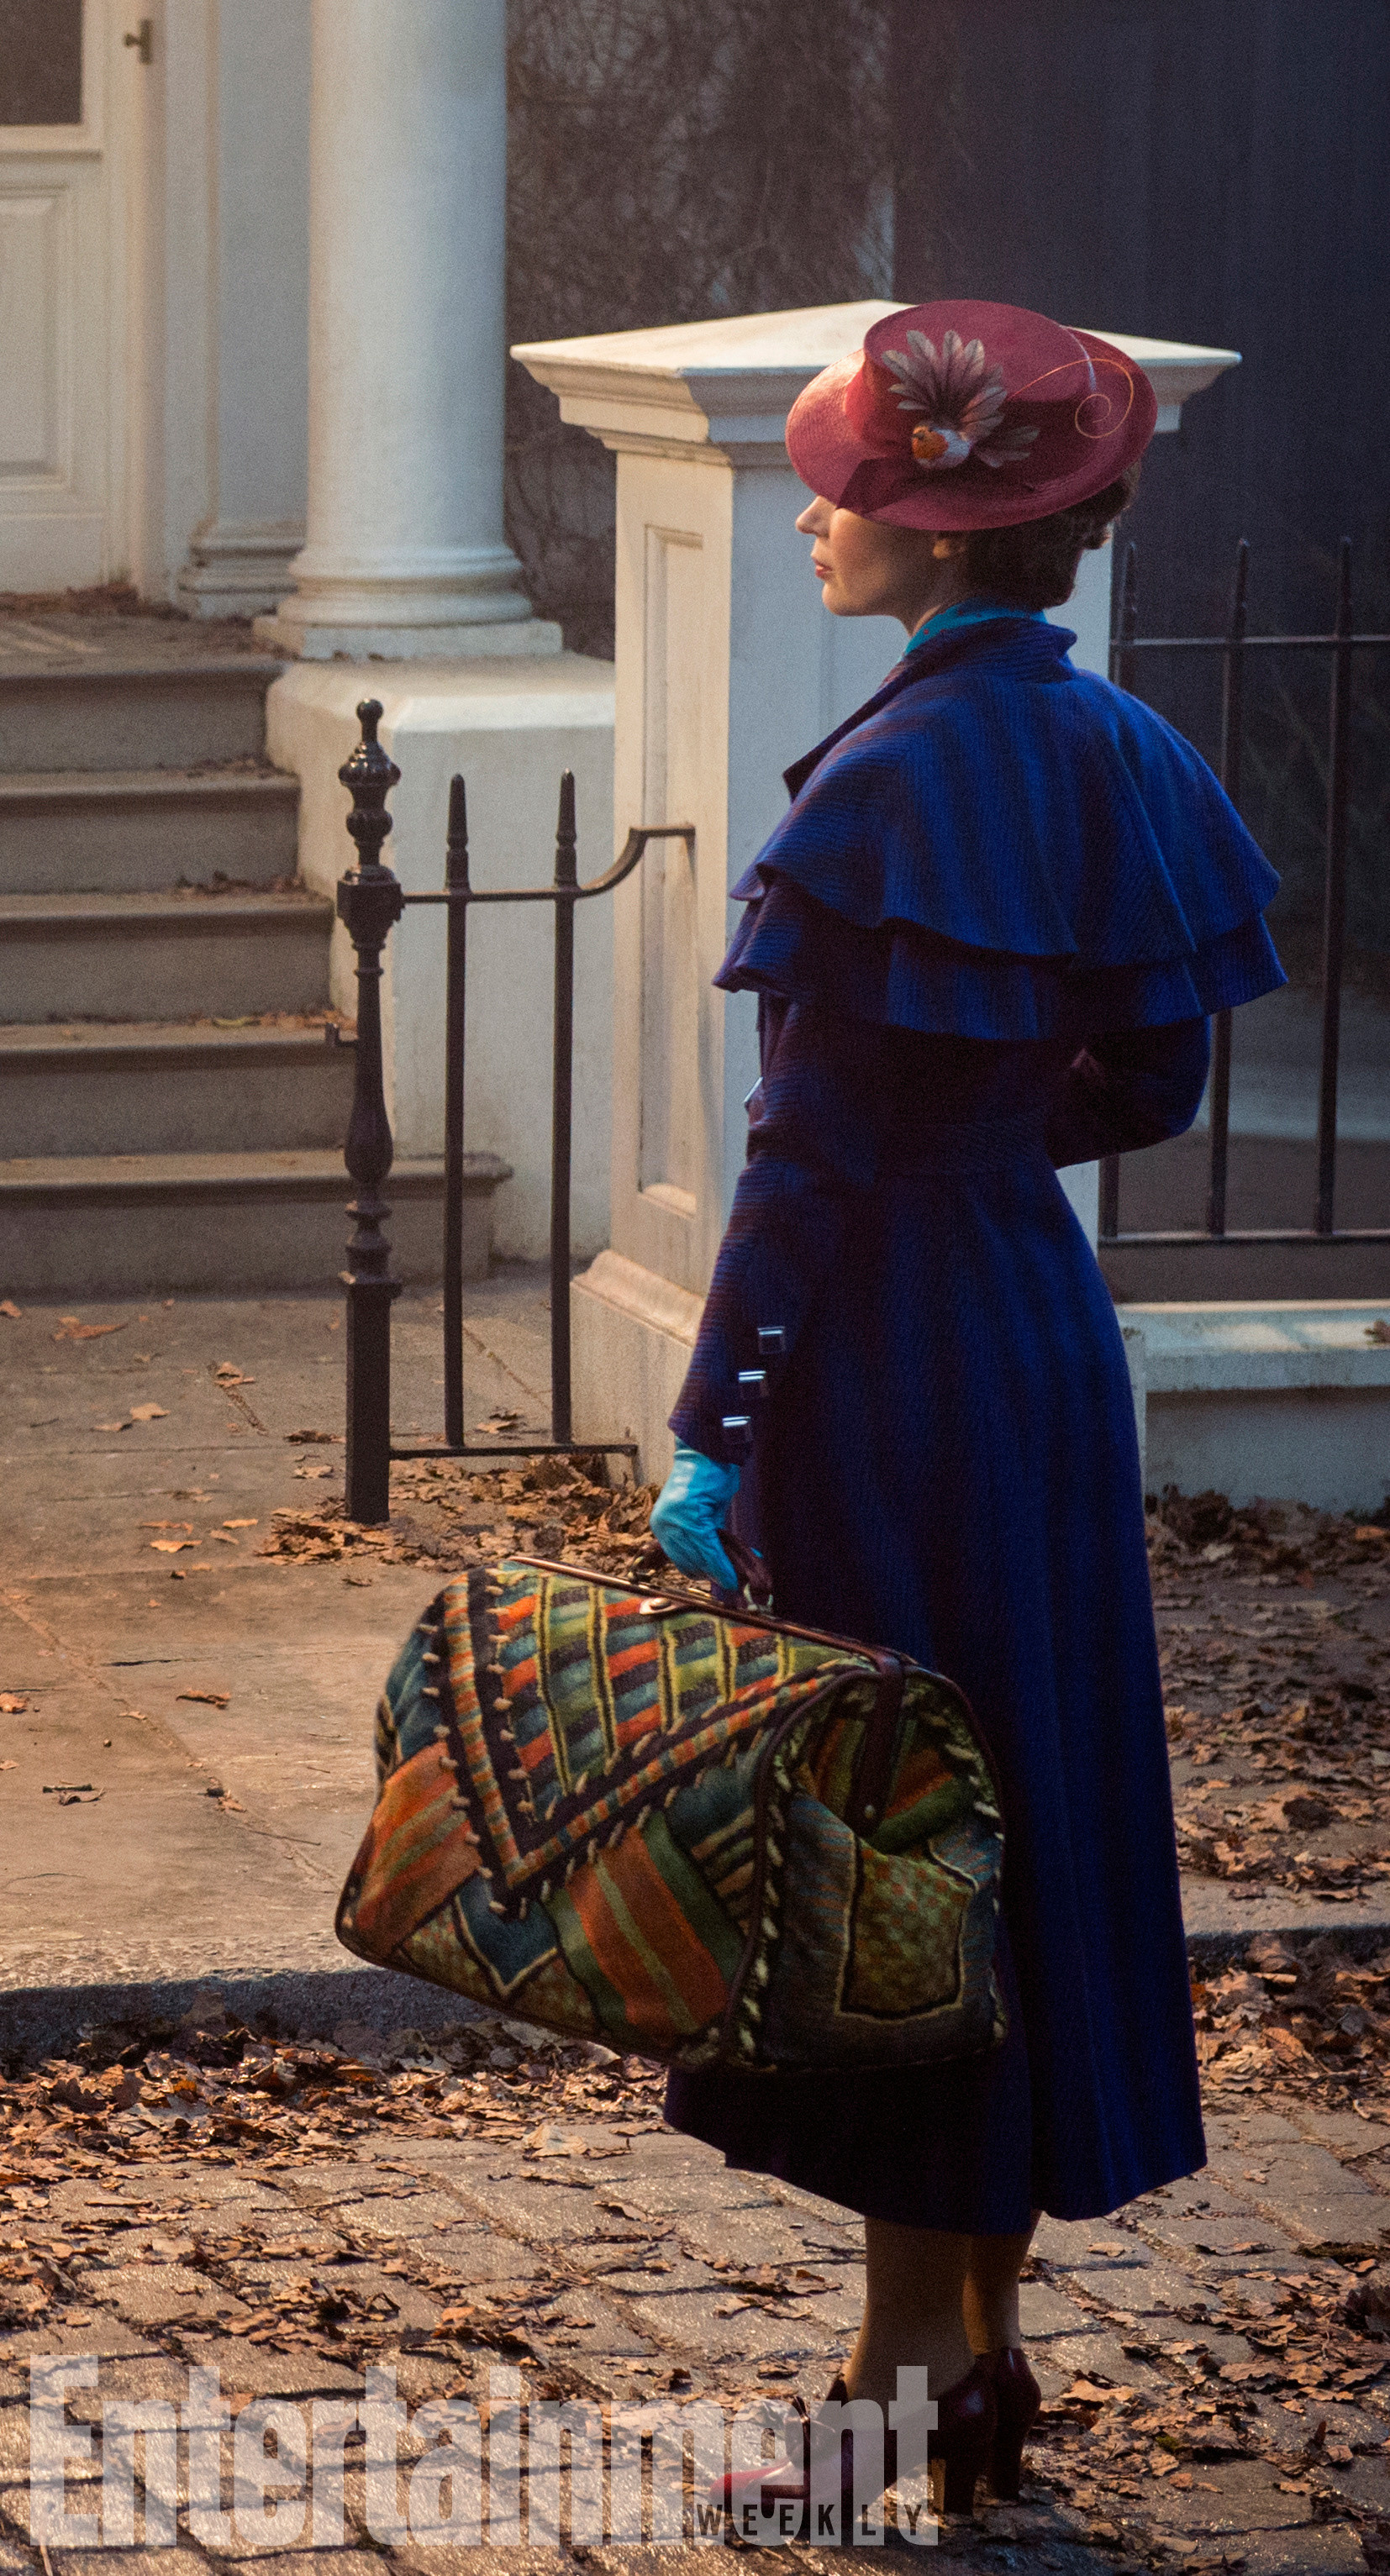 Emily Blunt Looks Supercalifragilisticexpialidocious in First 'Mary Poppins Returns' Photo